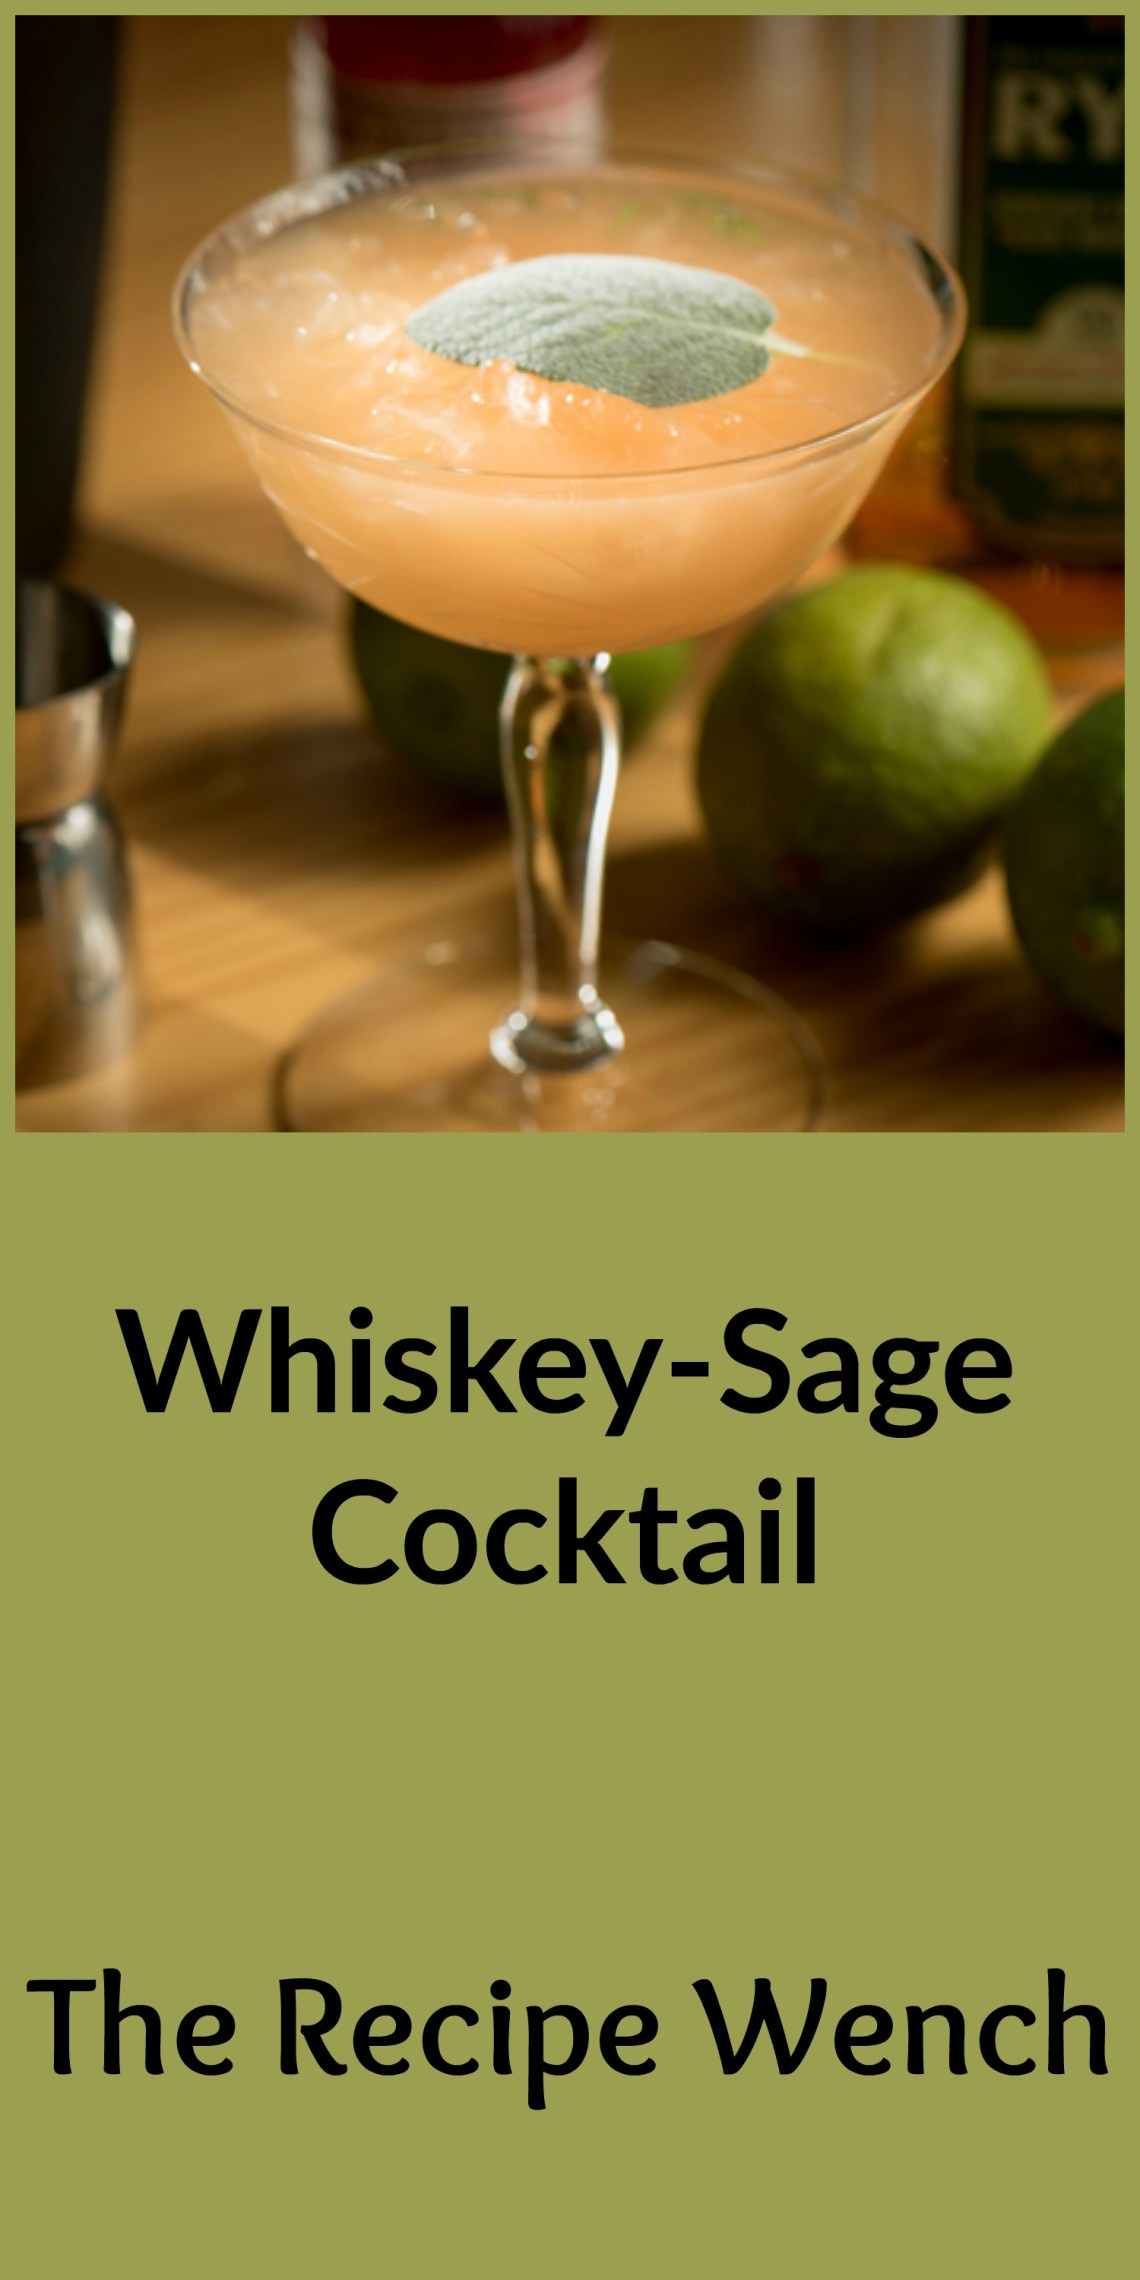 Sexy whiskey sage cocktail unites spicy whiskey and sage to bring you a cocktail perfect for sipping in the cooler winter months. It's a handsome drink too! Win! | The Recipe Wench